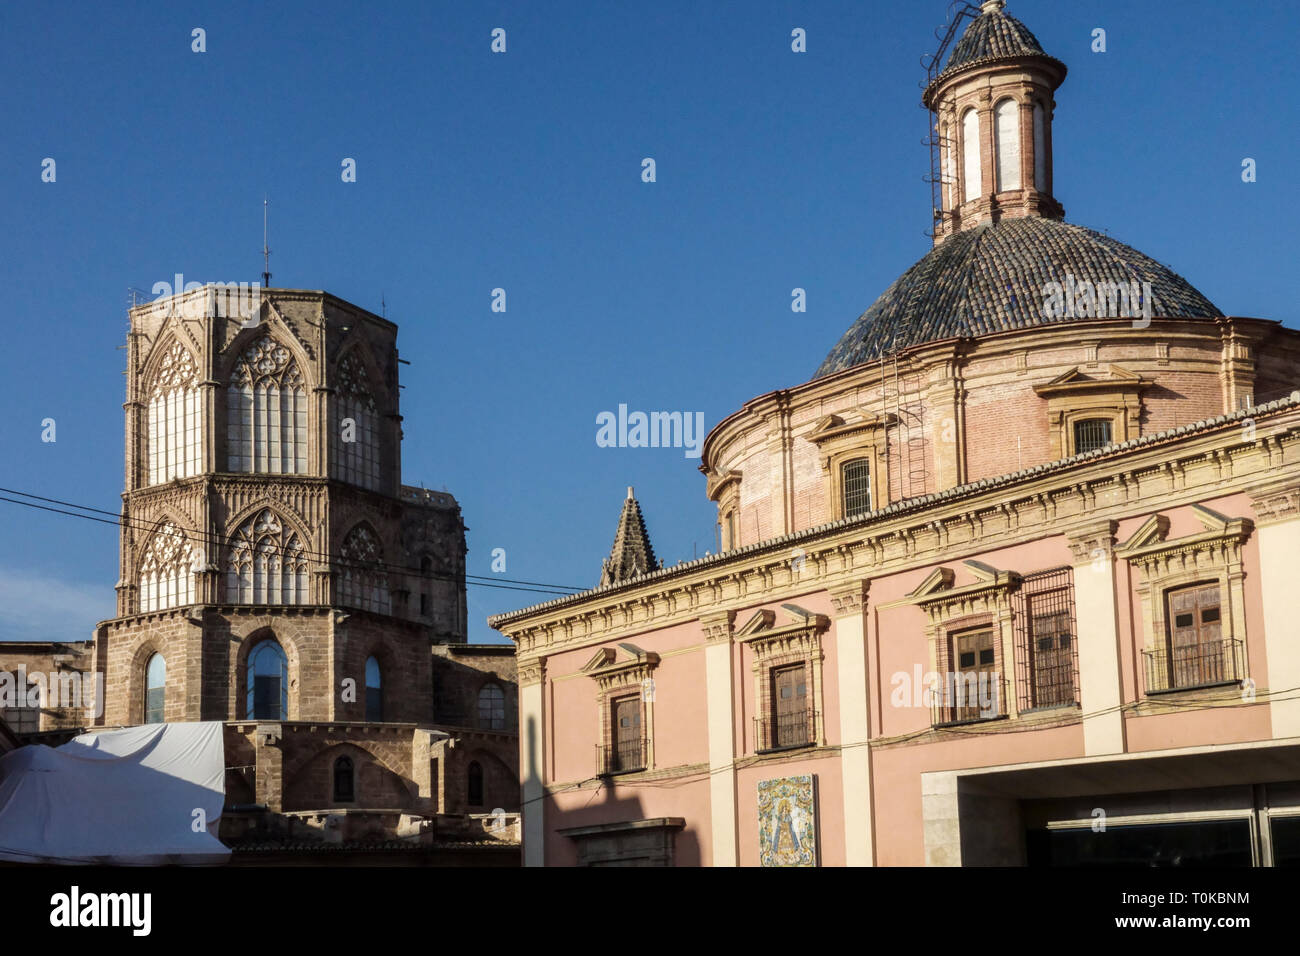 Cathedral Tower and Basílica de la Mare de Déu dels Desamparats, Basilica of Our Lady of the Forsaken, Valencia Spain - Stock Image